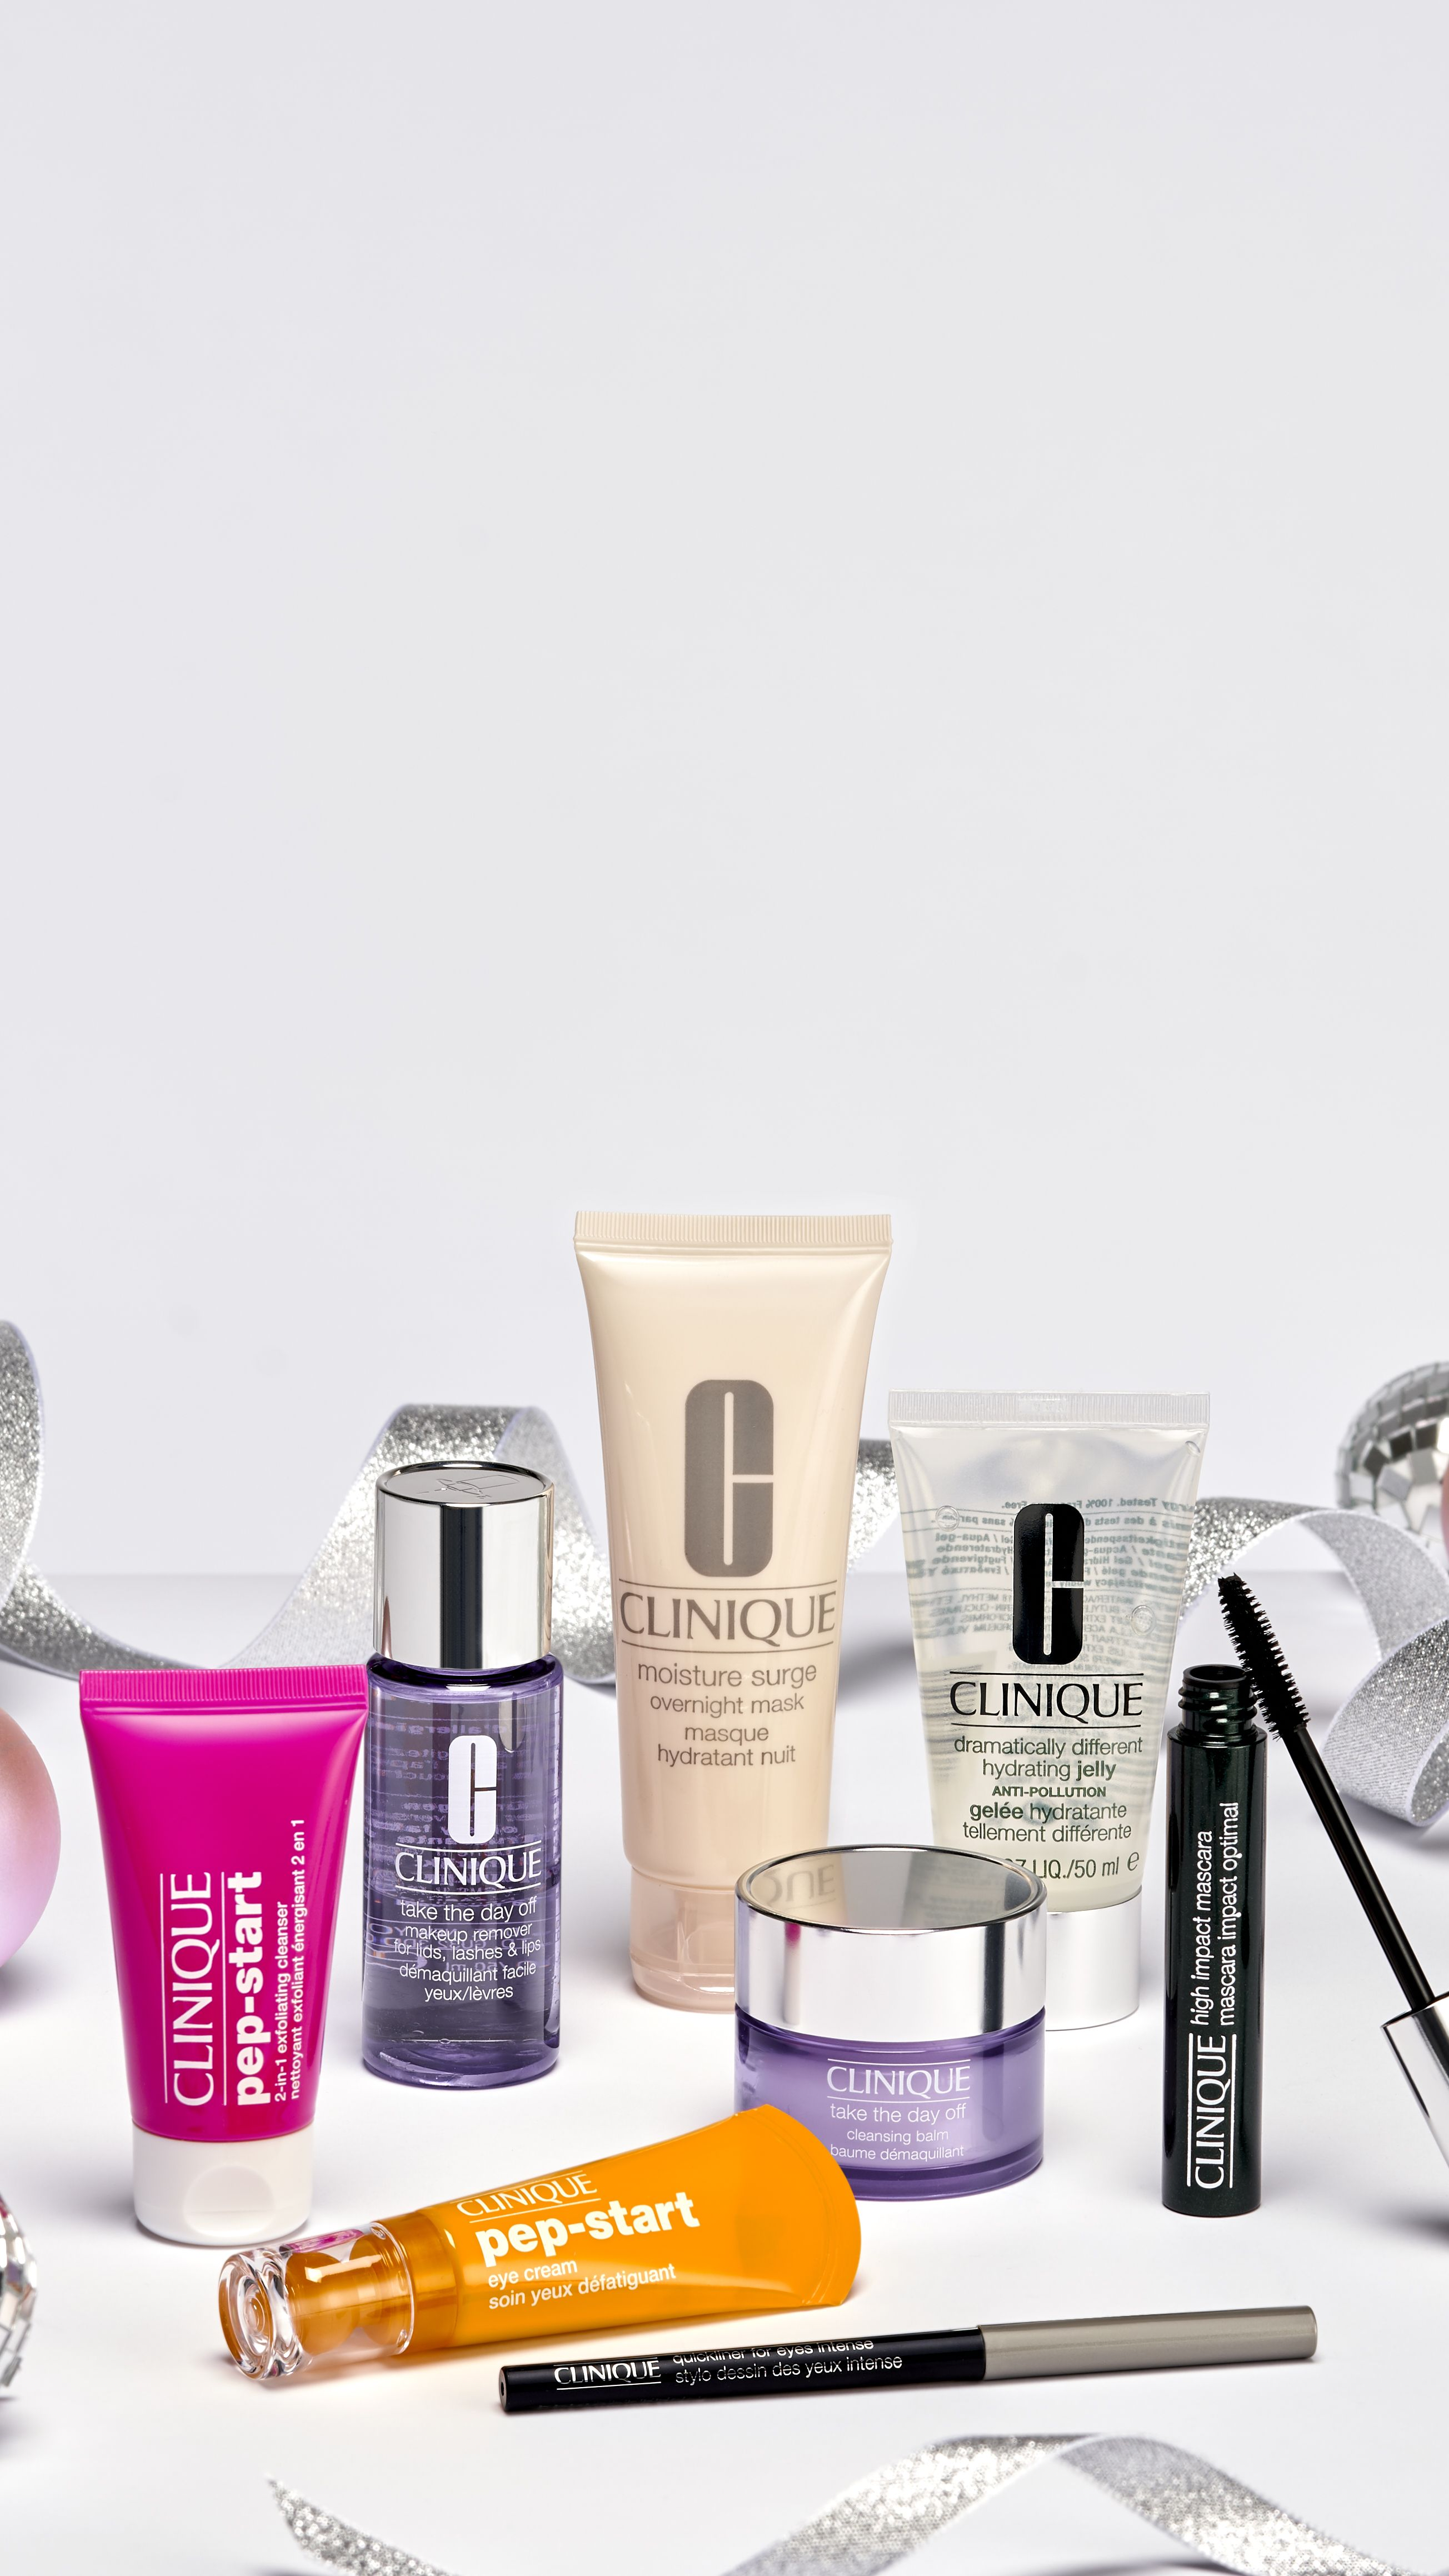 Official Site in 2020 Makeup gift sets, Clinique